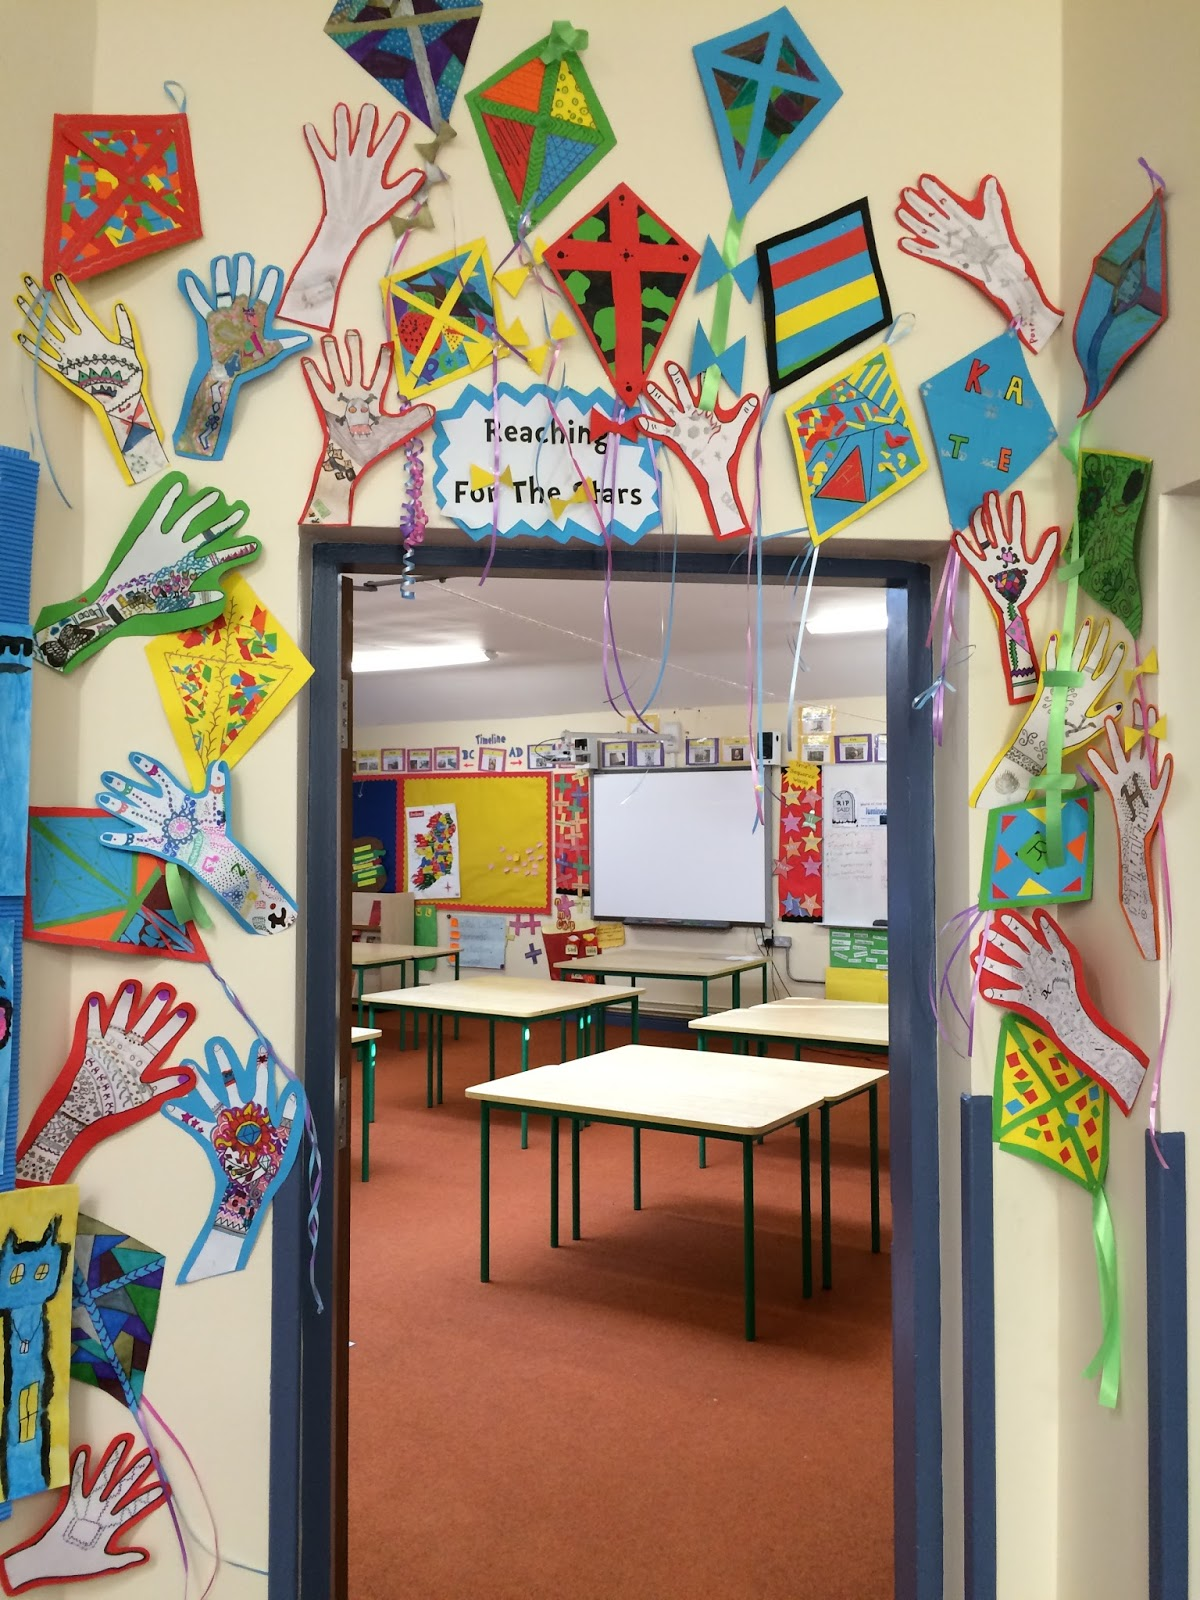 Classroom Entrance Ideas ~ Ms wards classroom reach for the stars door display